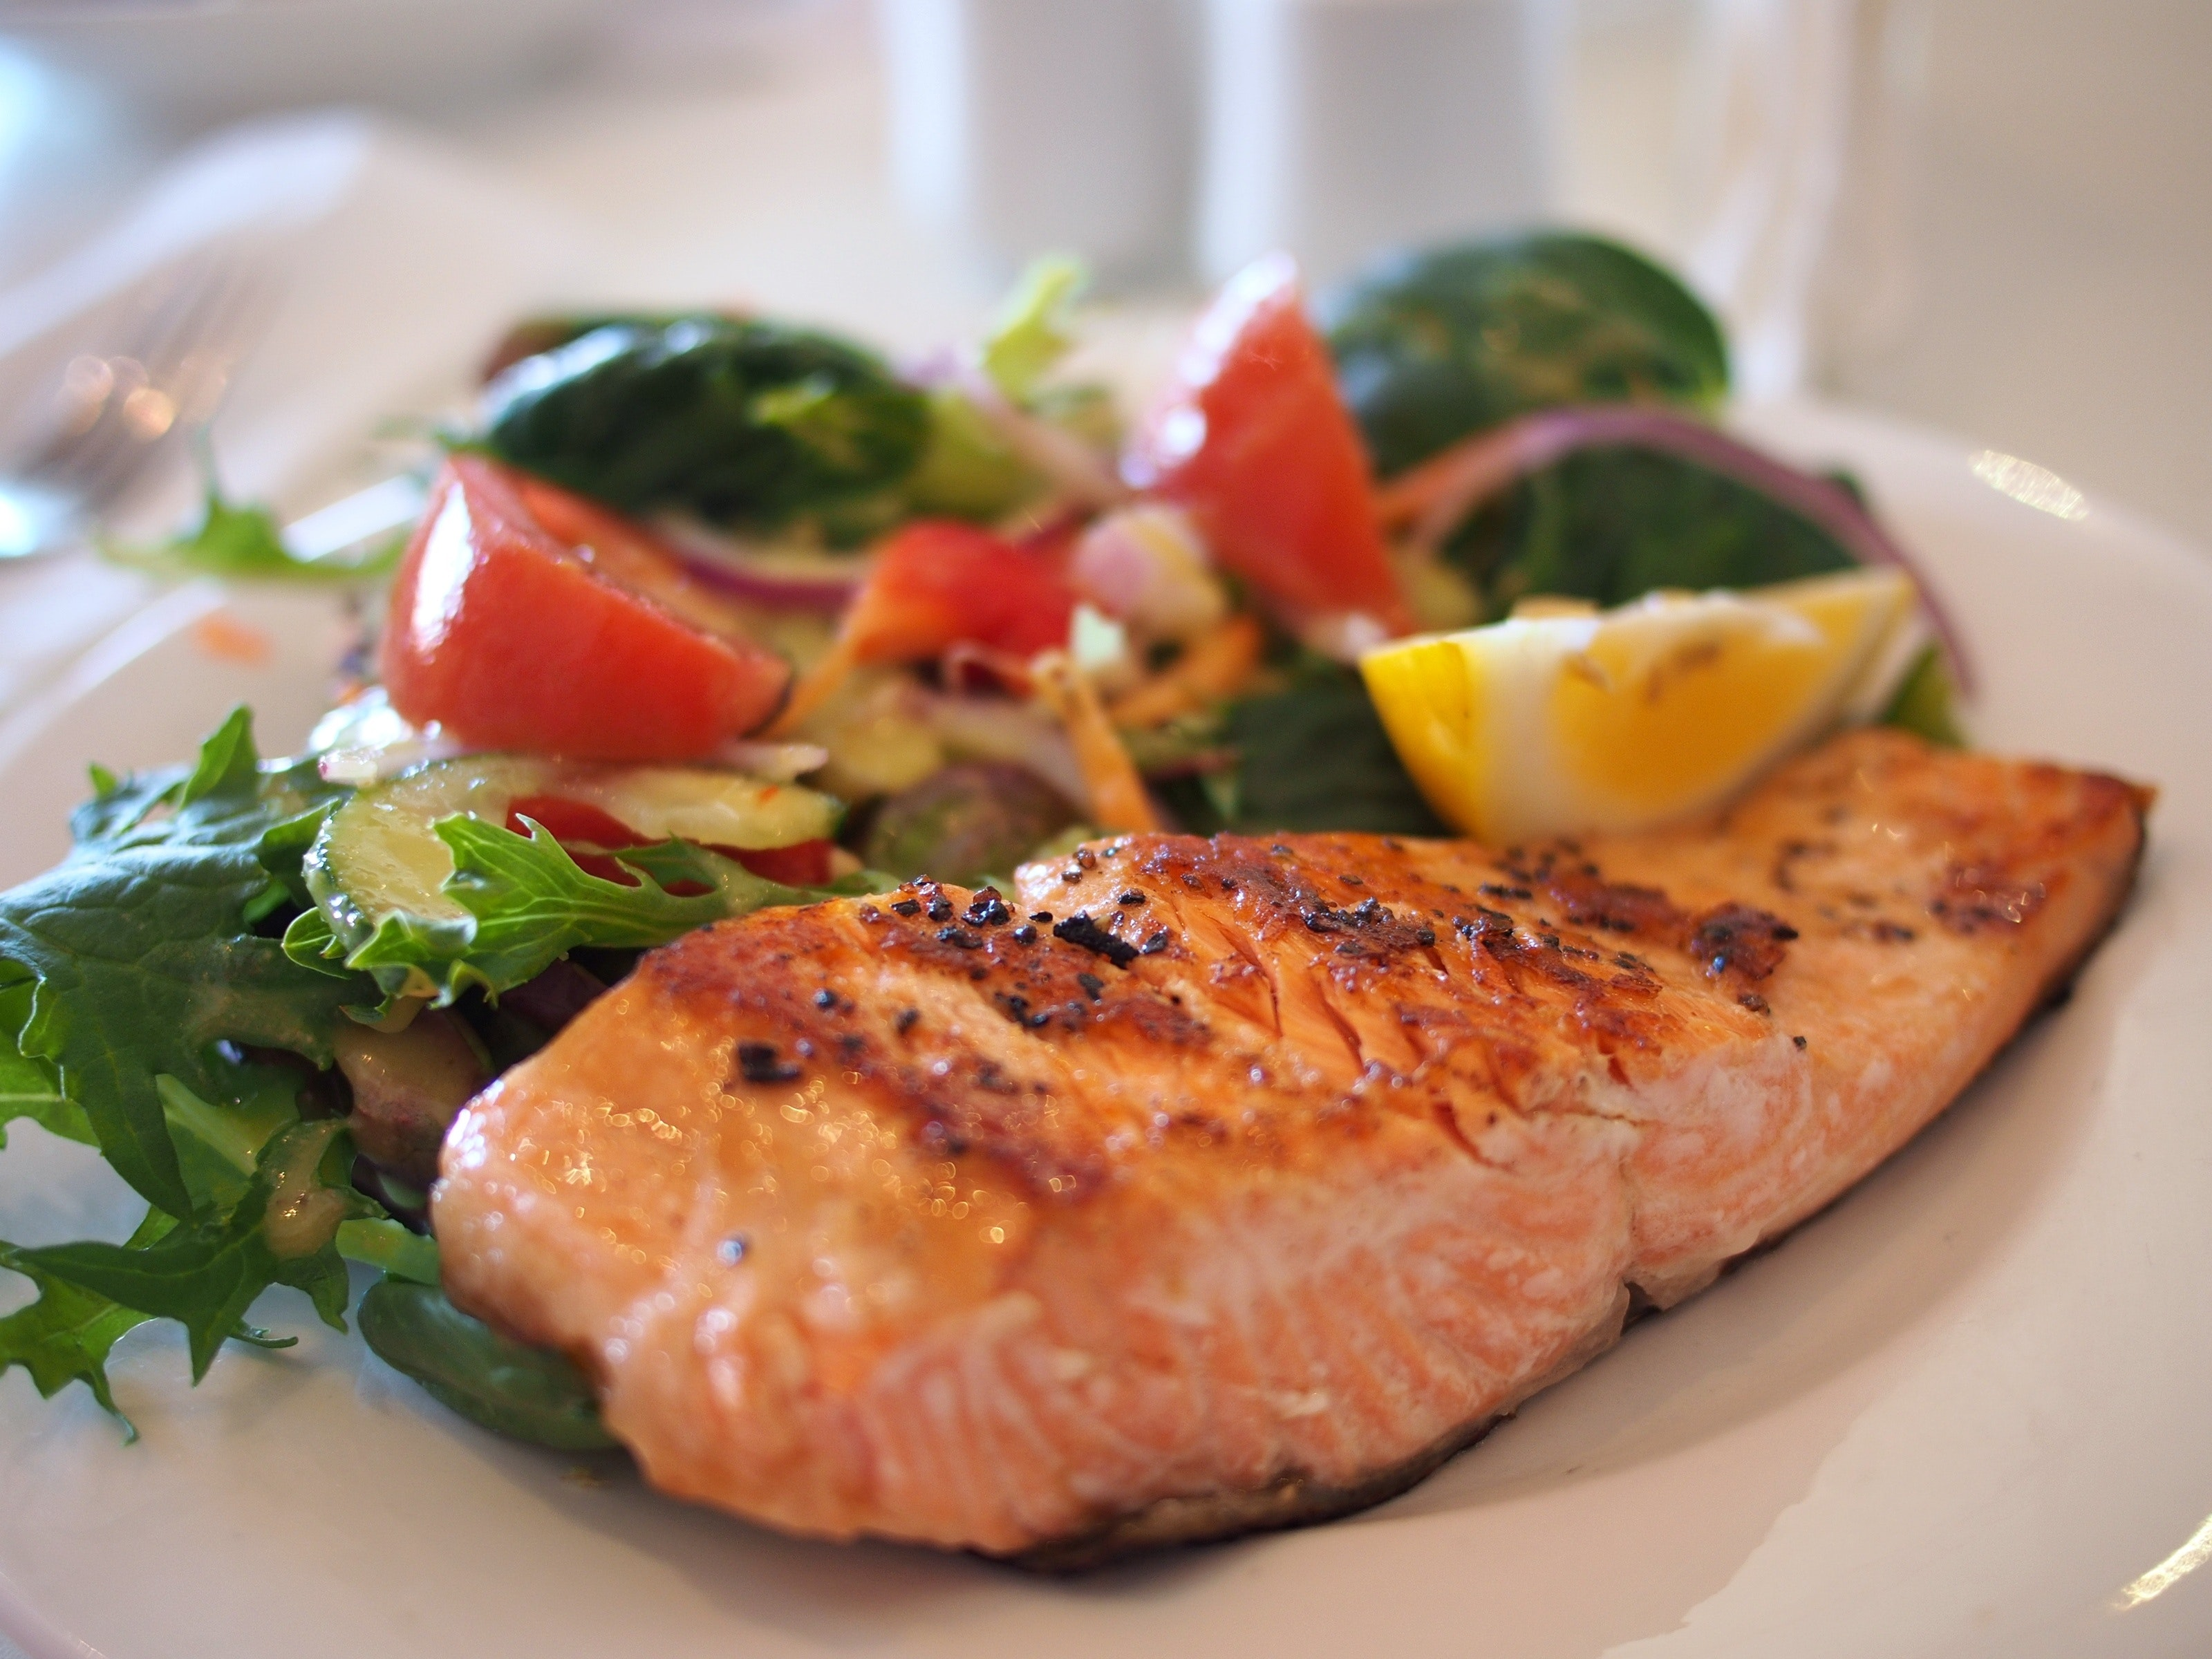 A plate of seared salmon and vegetables